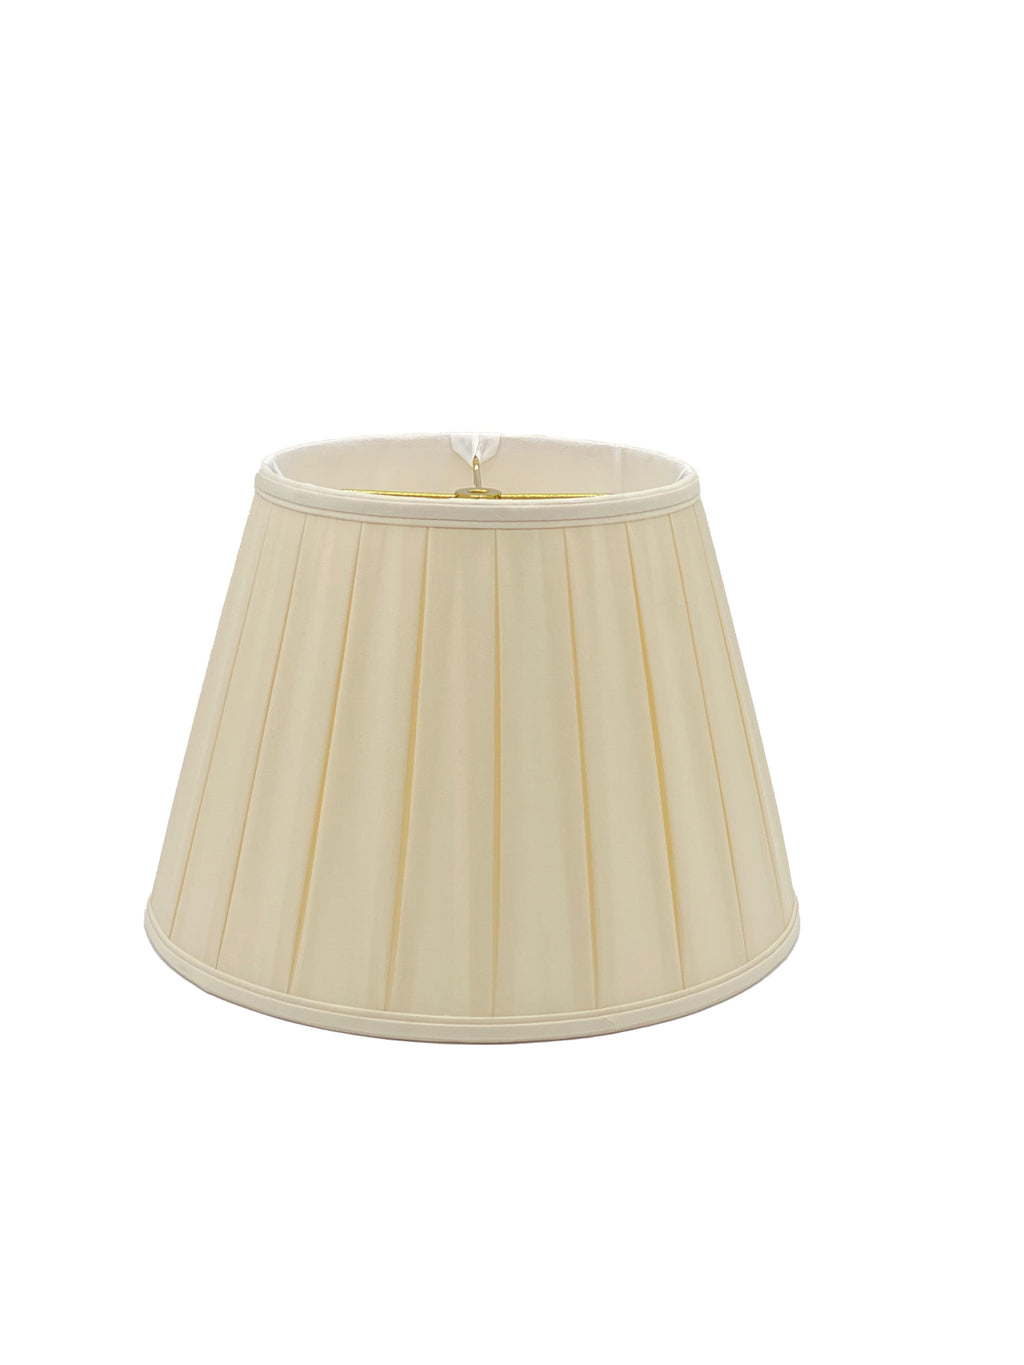 Silk English Empire Wide Box Pleat - Egg - Lampshade